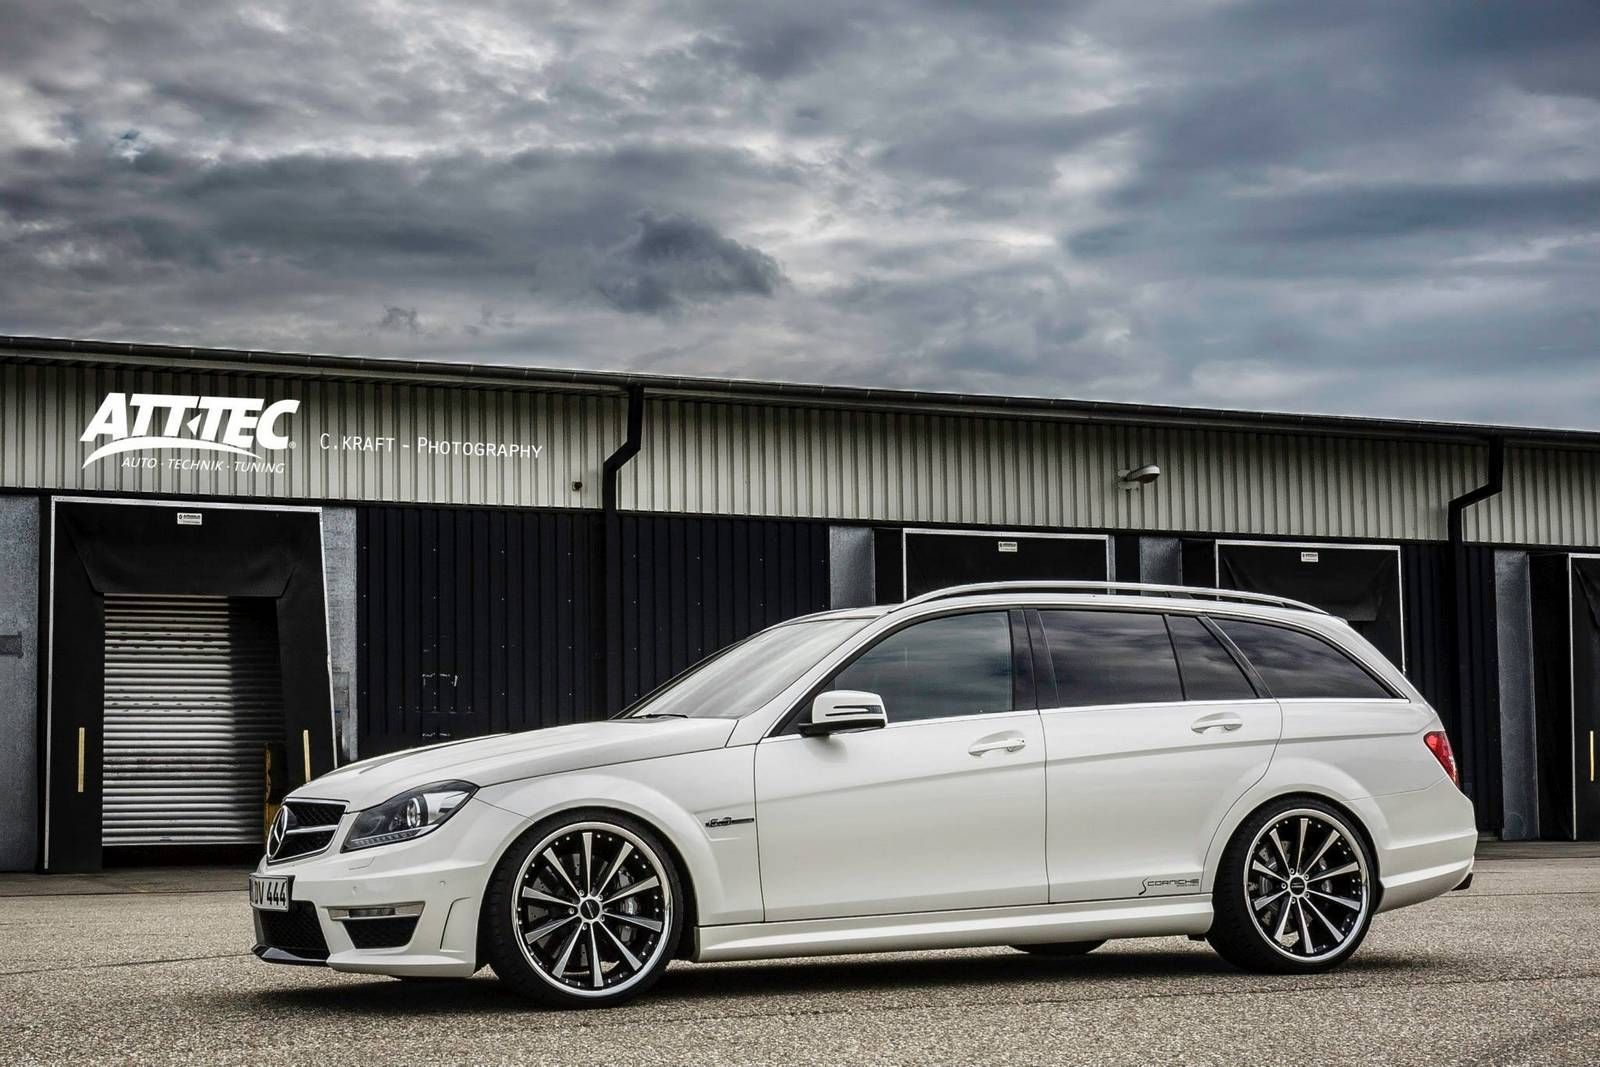 mercedes-benz c 63 amg estateatt-tec gmbh | need for speed